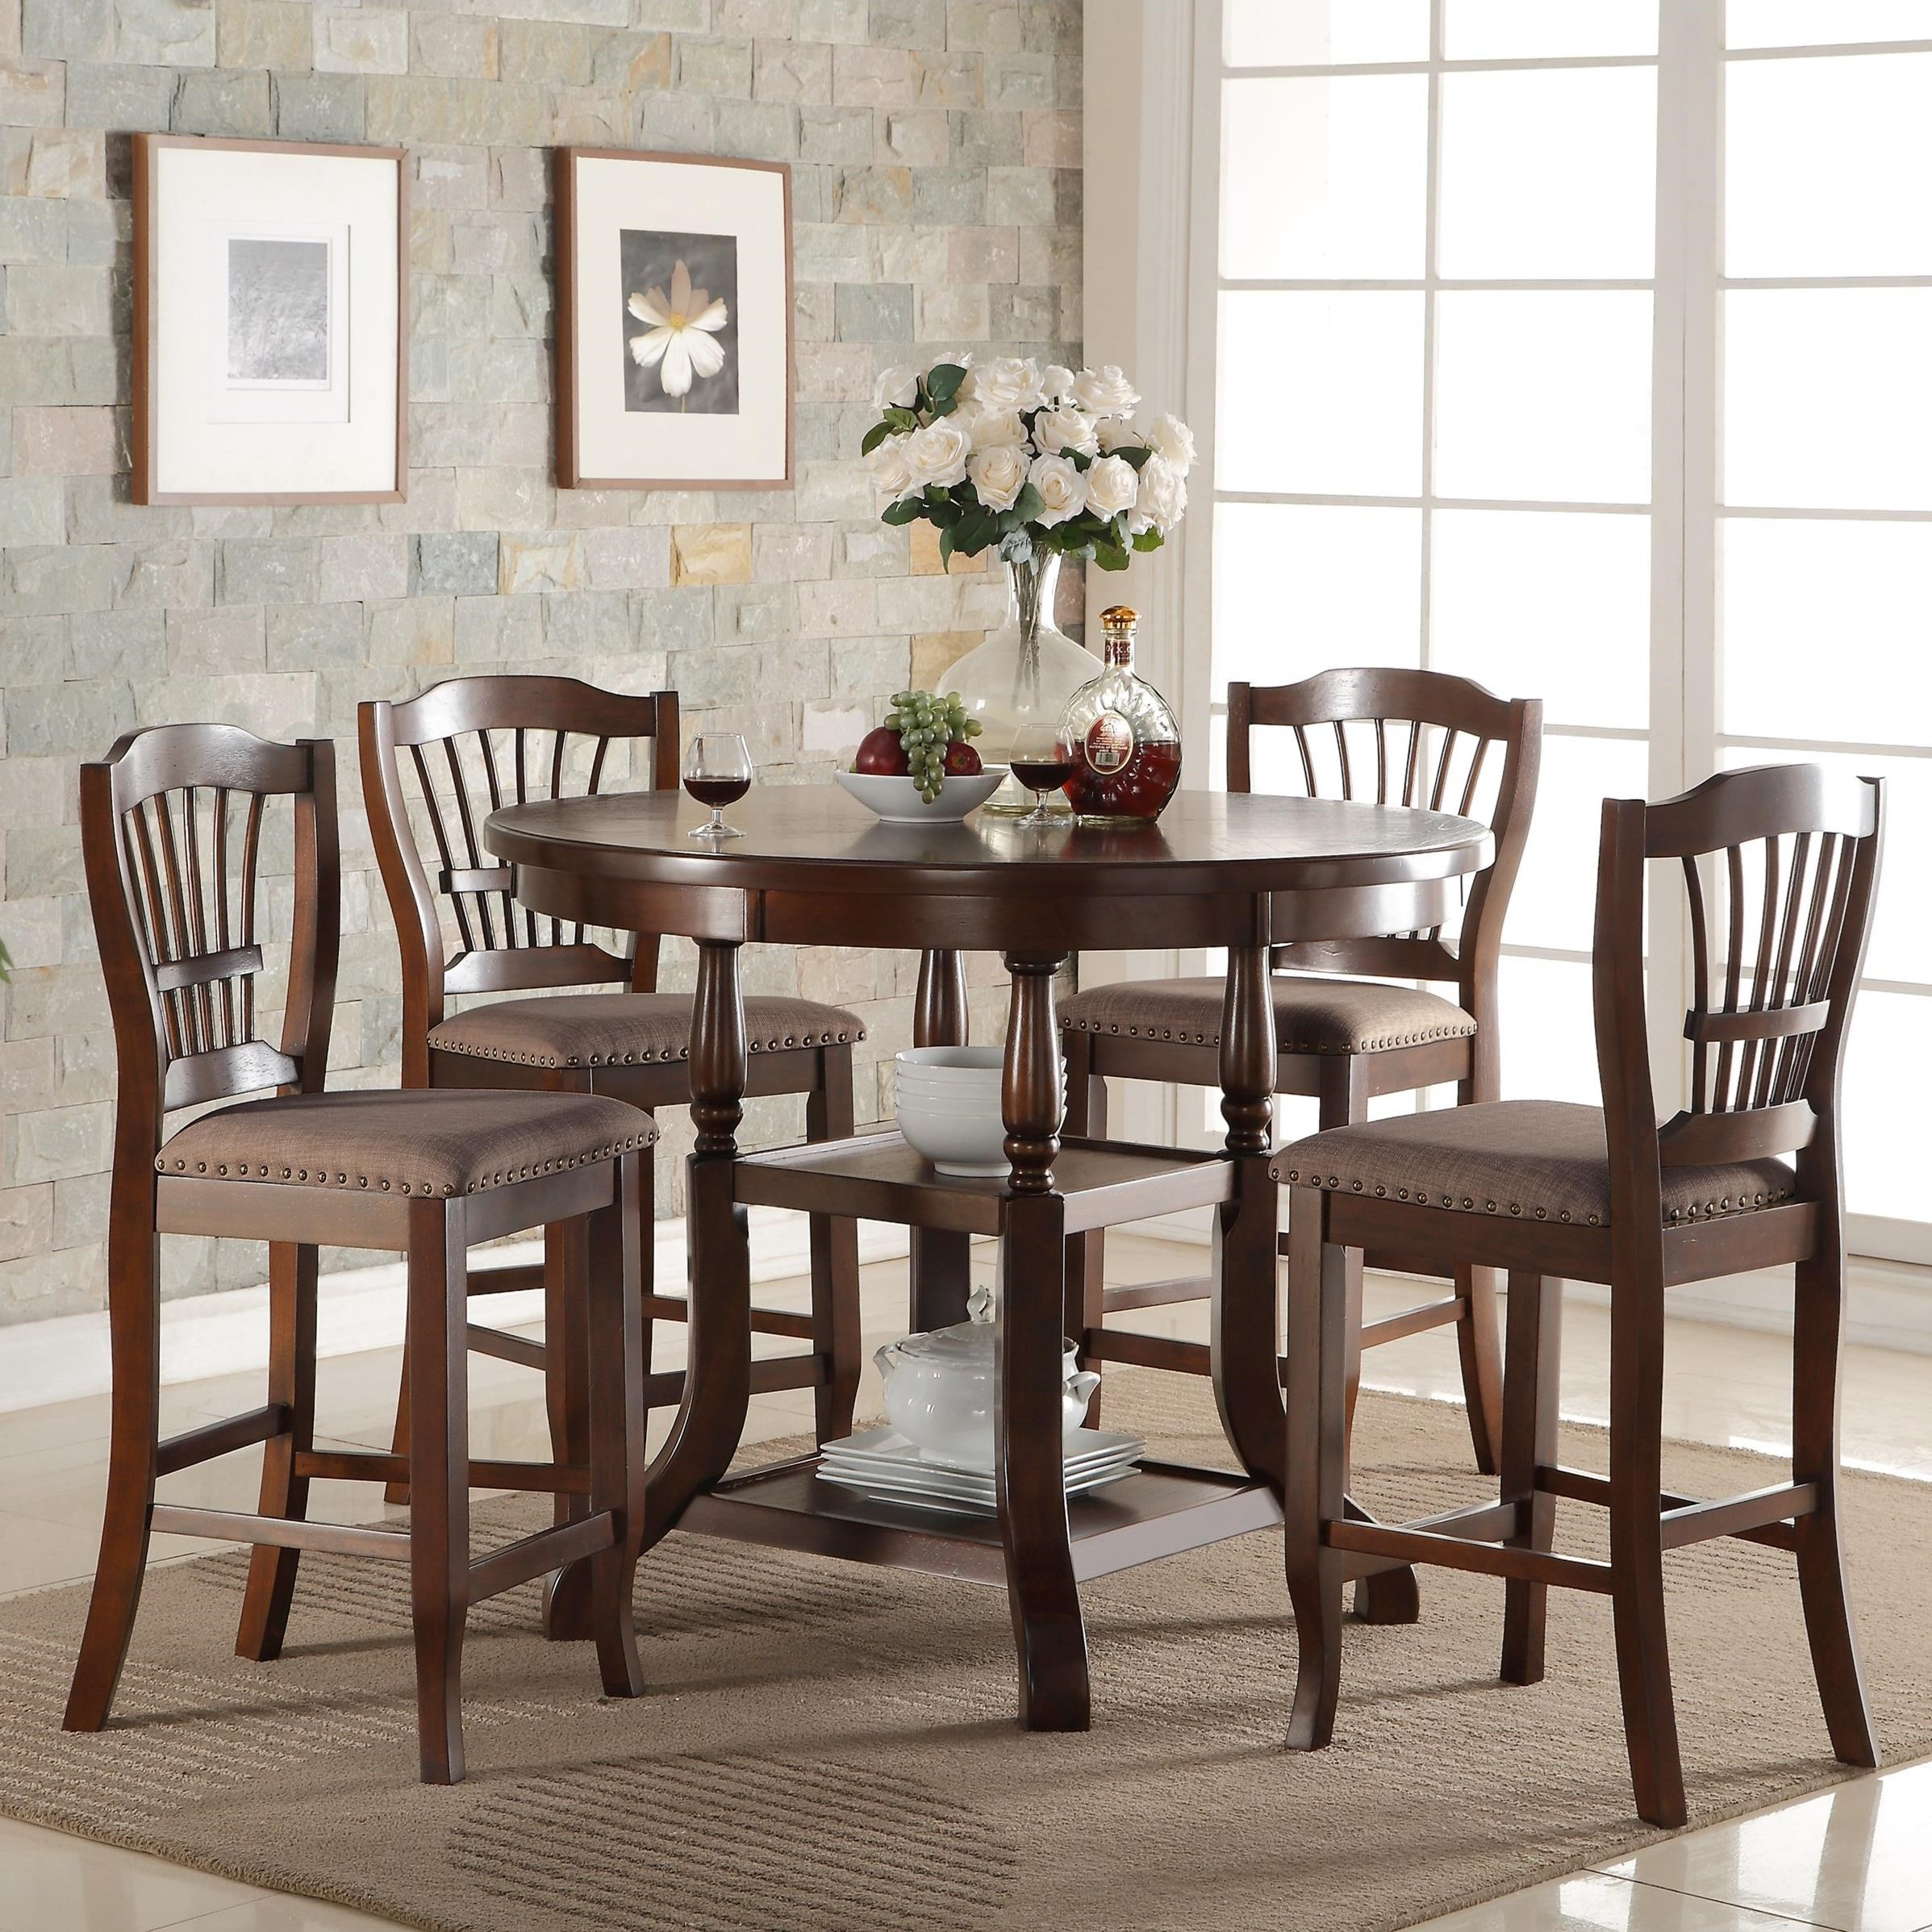 5 Piece Round Counter Table Set